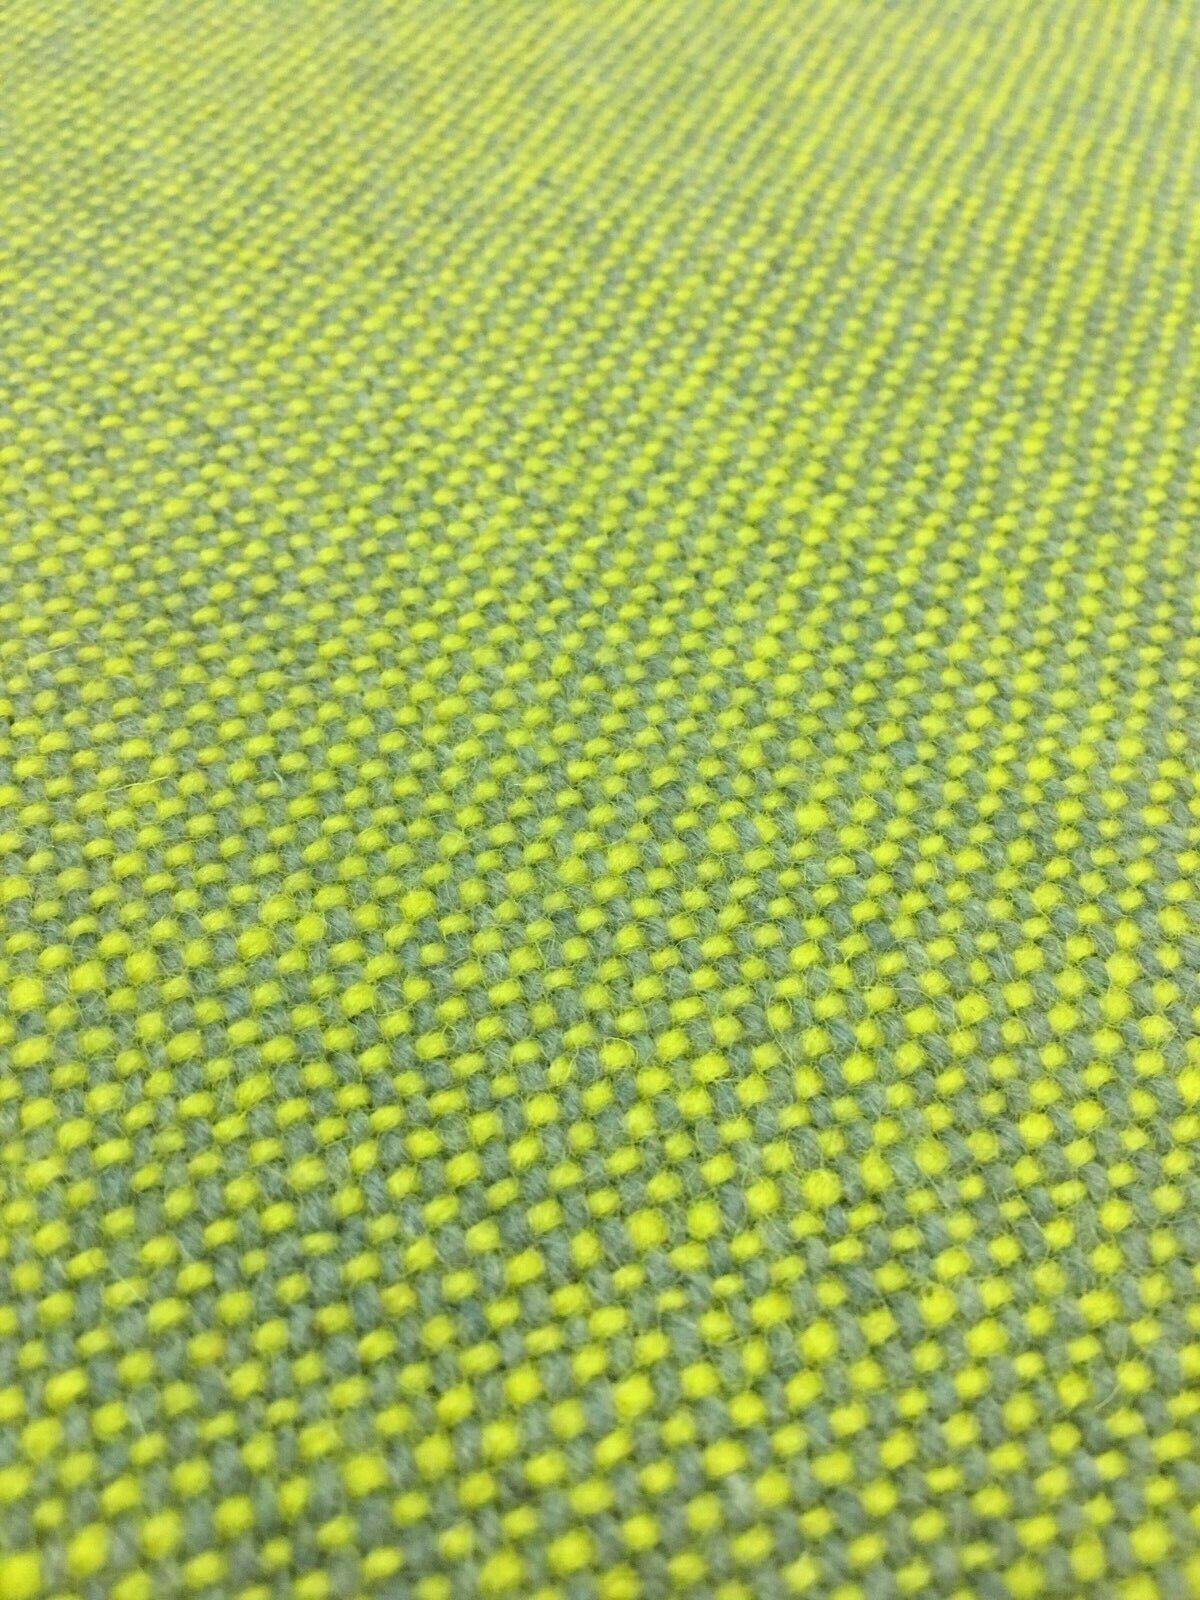 Designtex Tweed Gray & Yellow Woven Wool Upholstery Fabric 2 yards PW